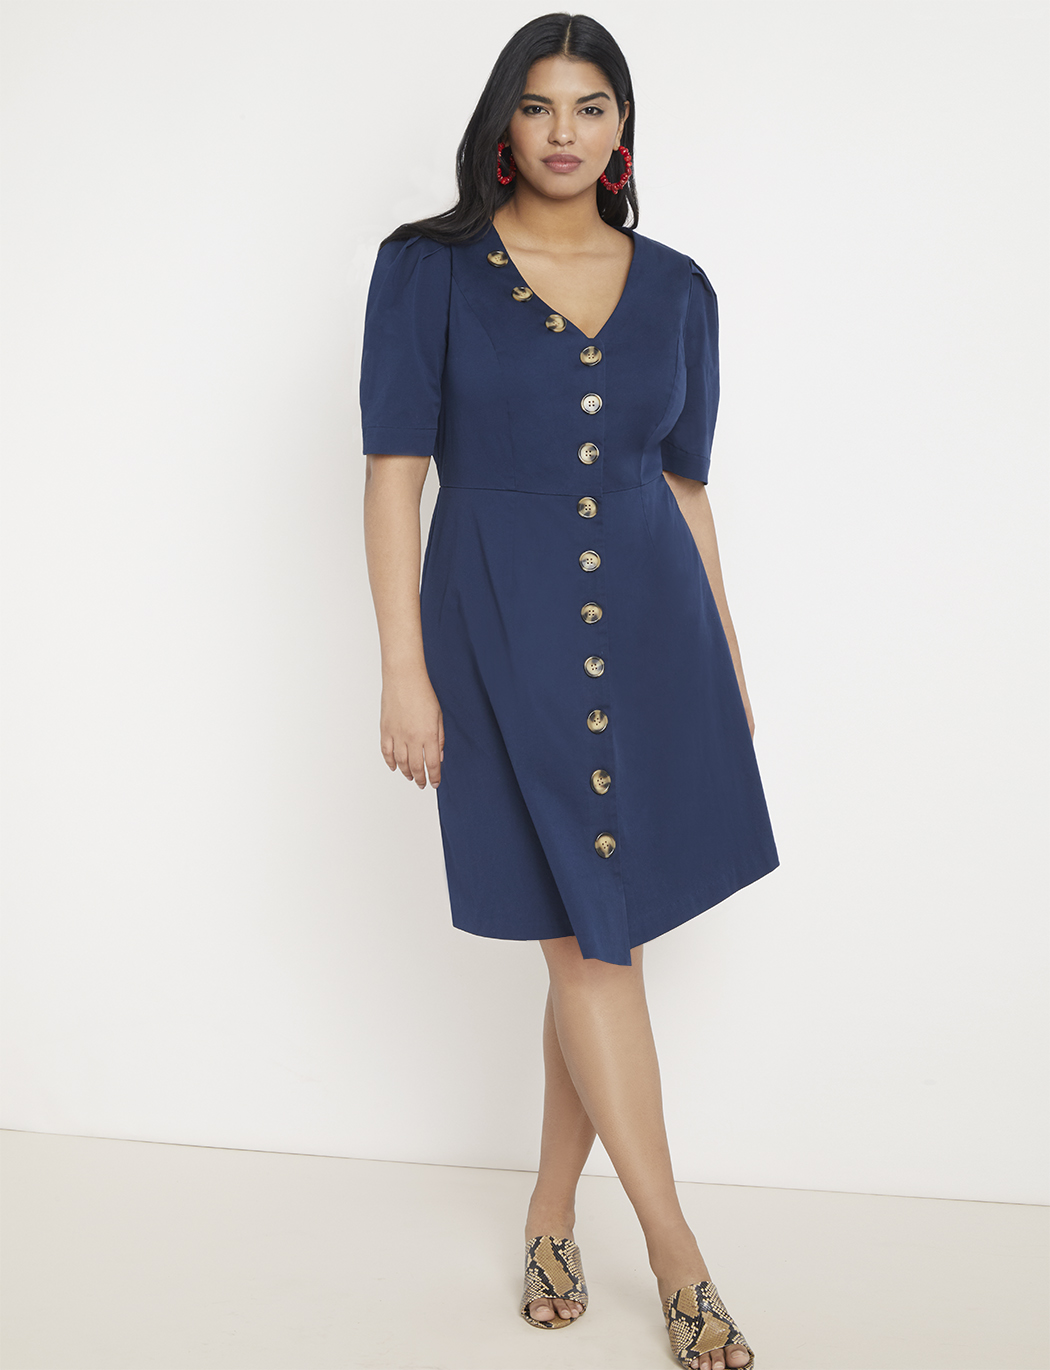 Button Front A-Line Dress | Women\'s Plus Size Dresses | ELOQUII